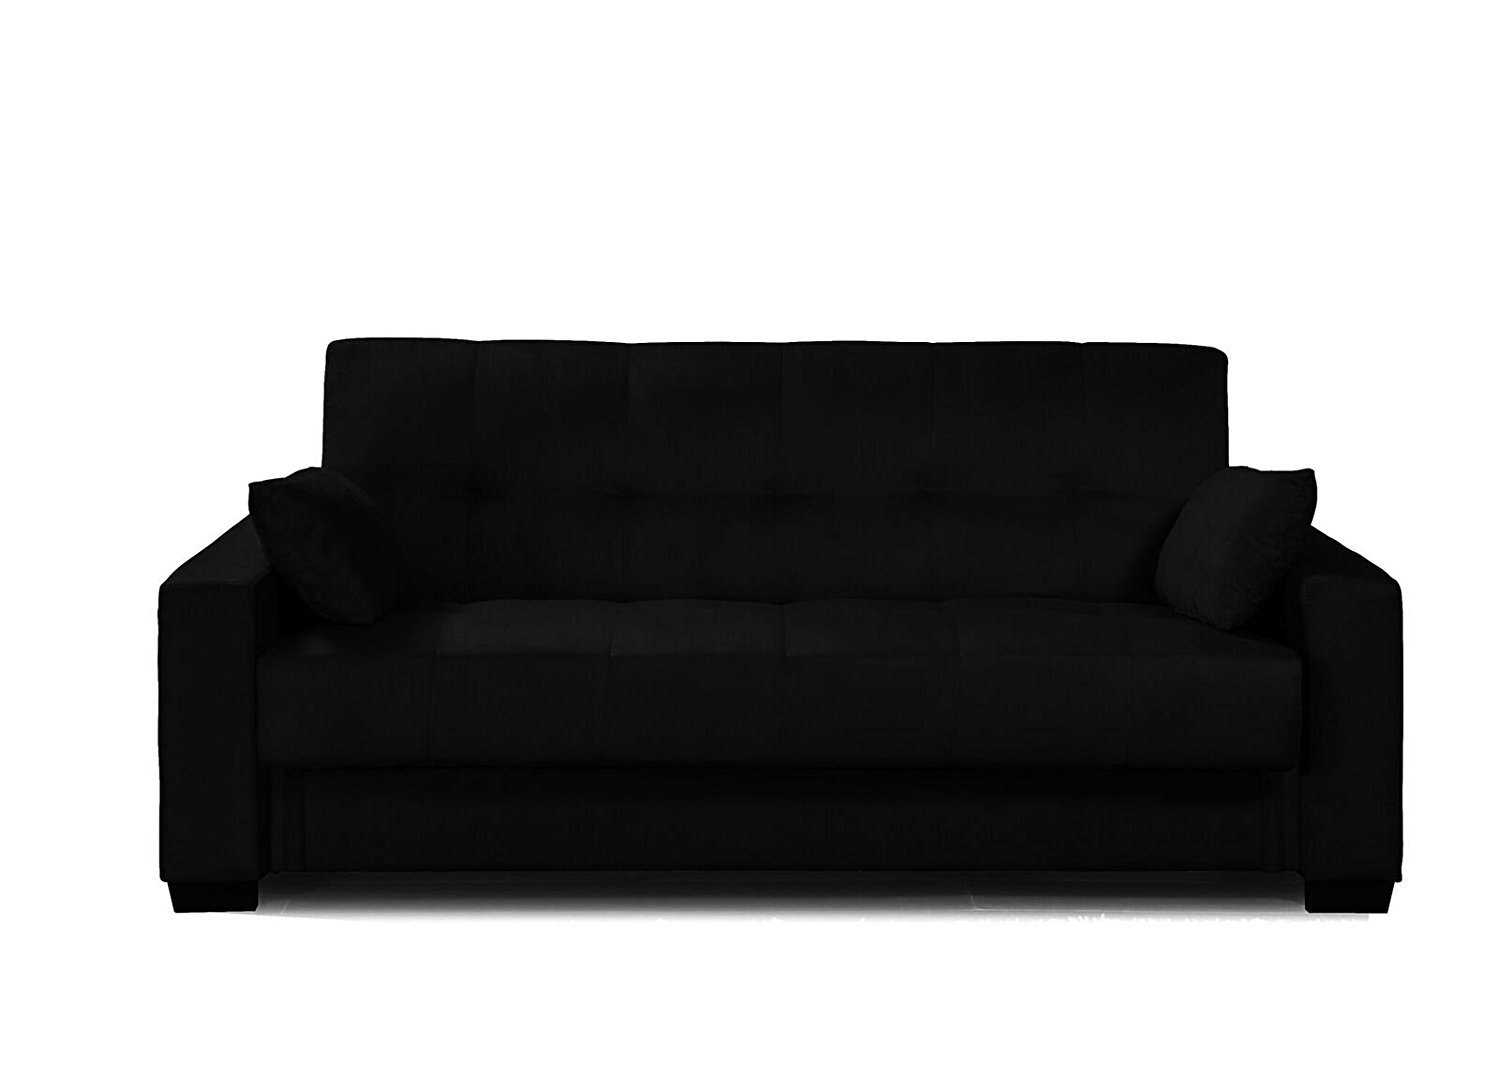 Microfiber Sofa Sleeper Bed Lounger With Storage Black Discount Furniture Warehouse